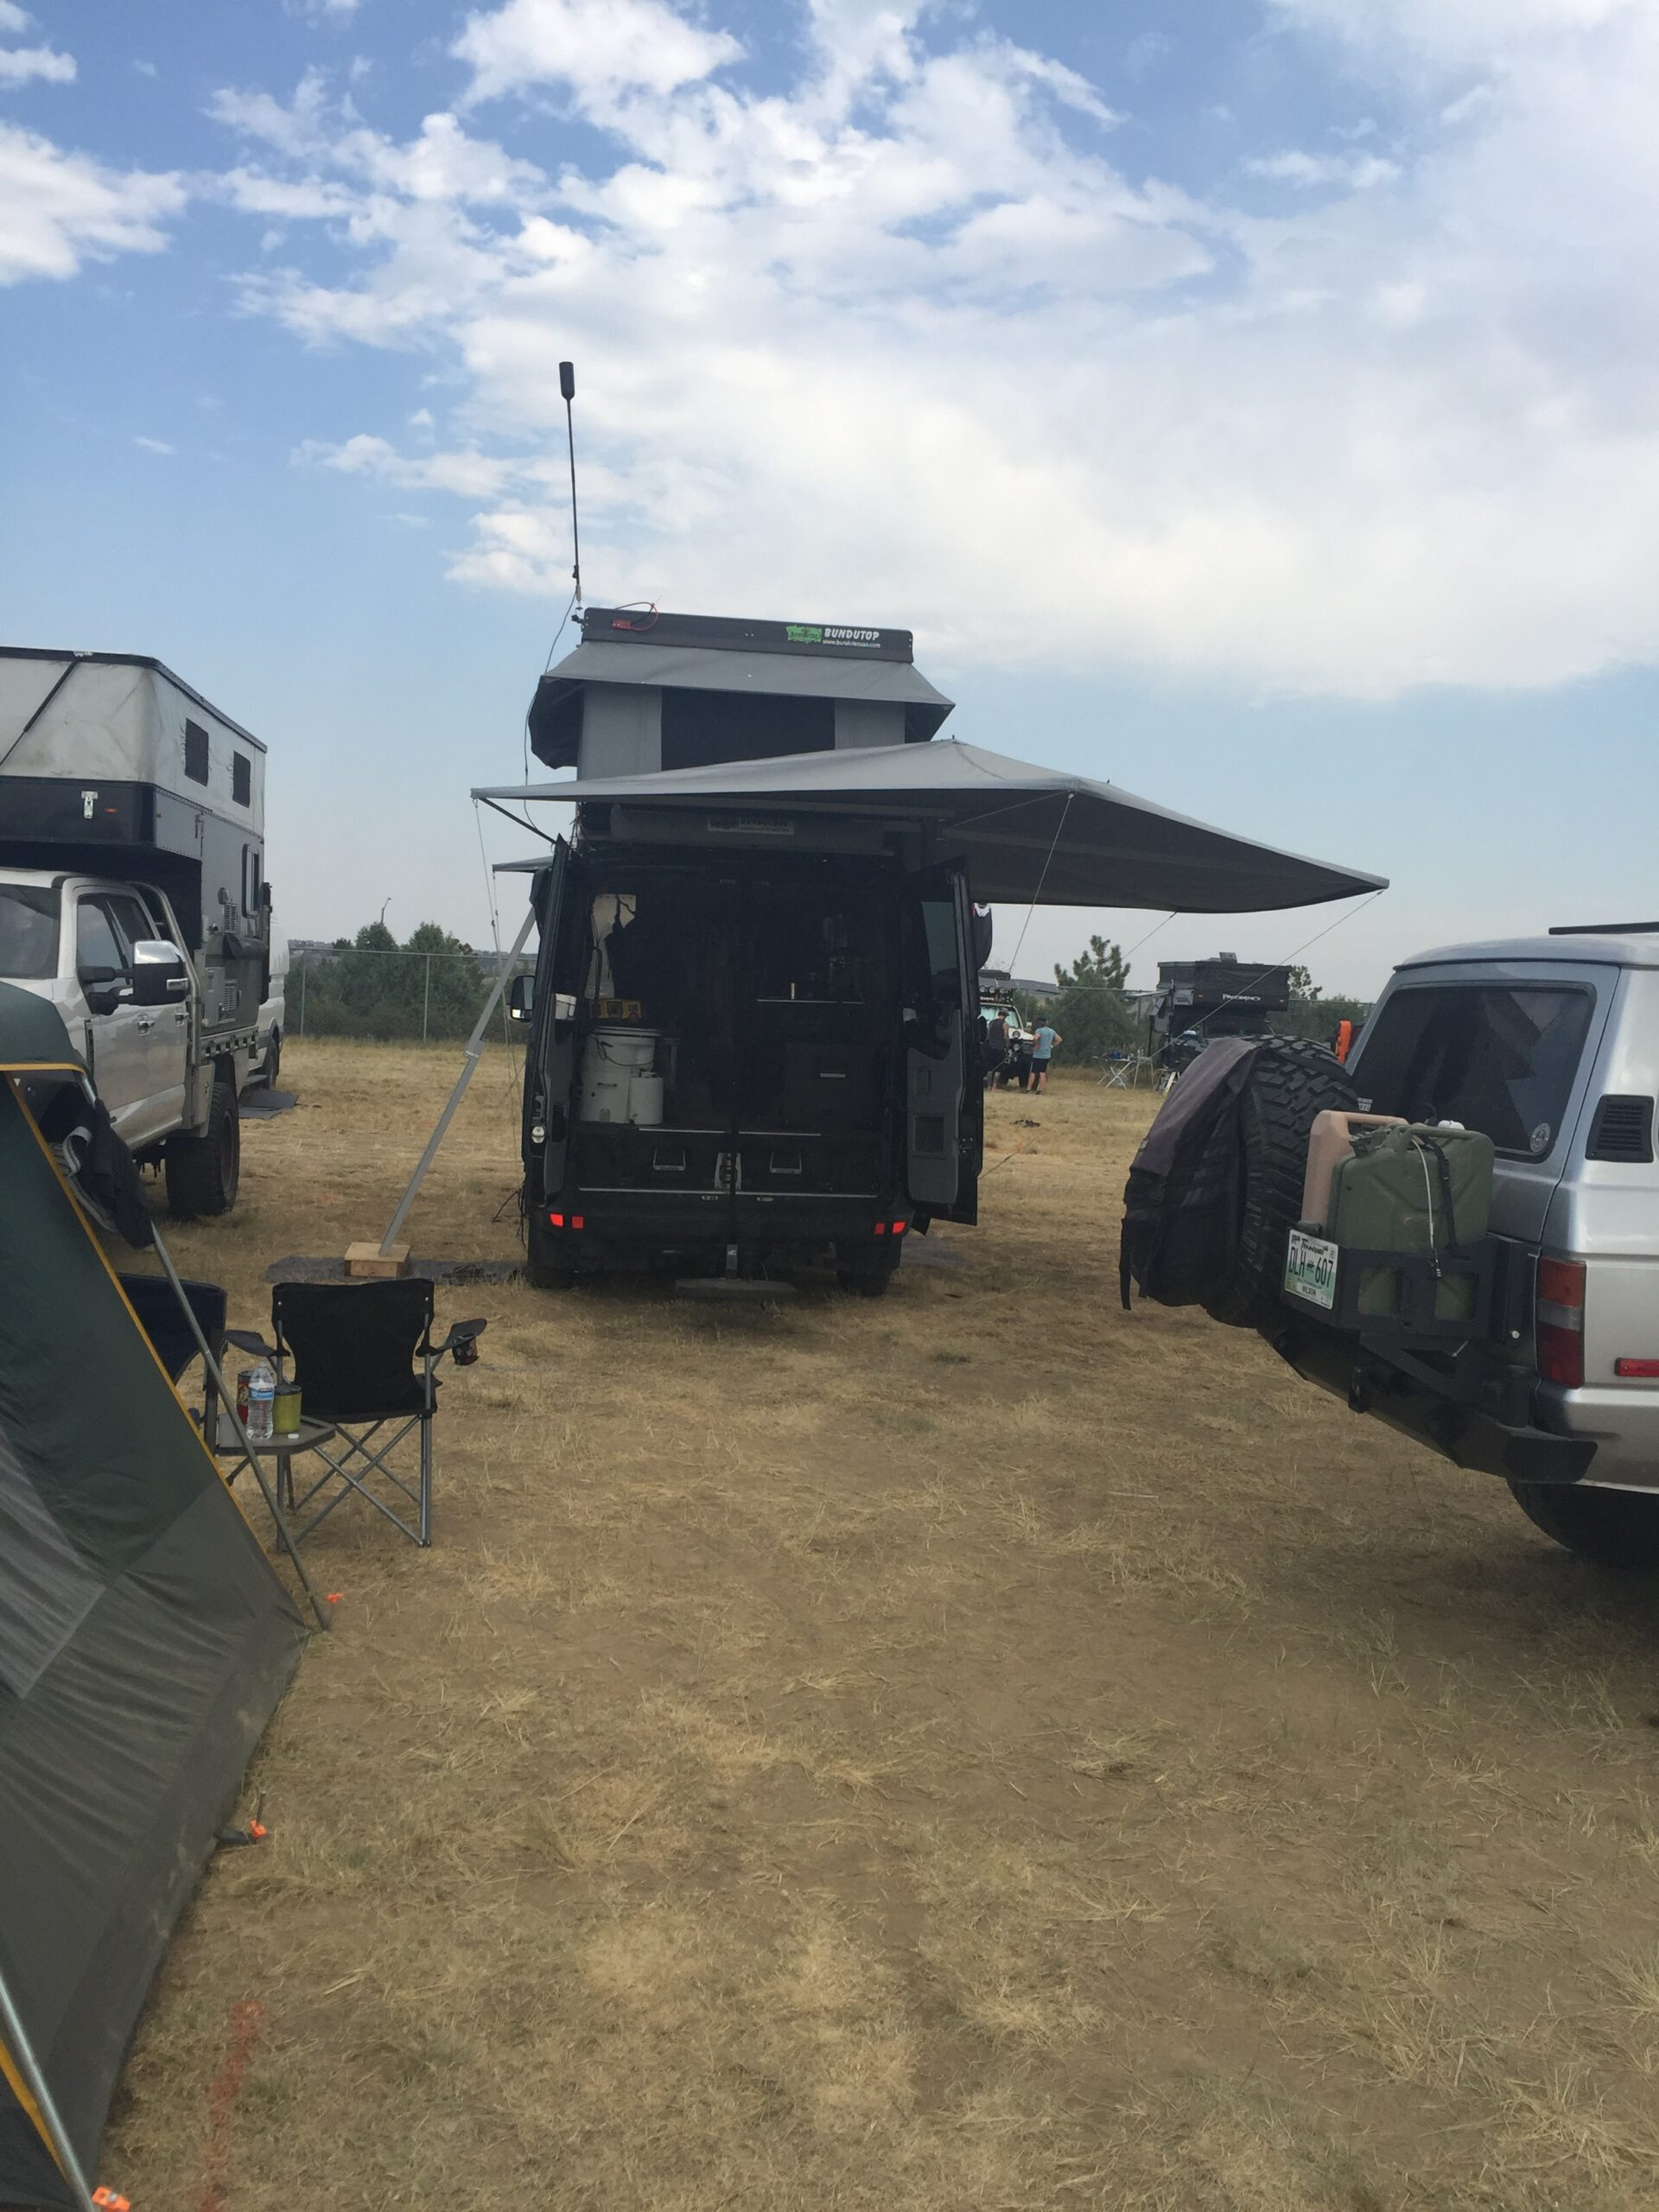 RV set up at Overland Expo